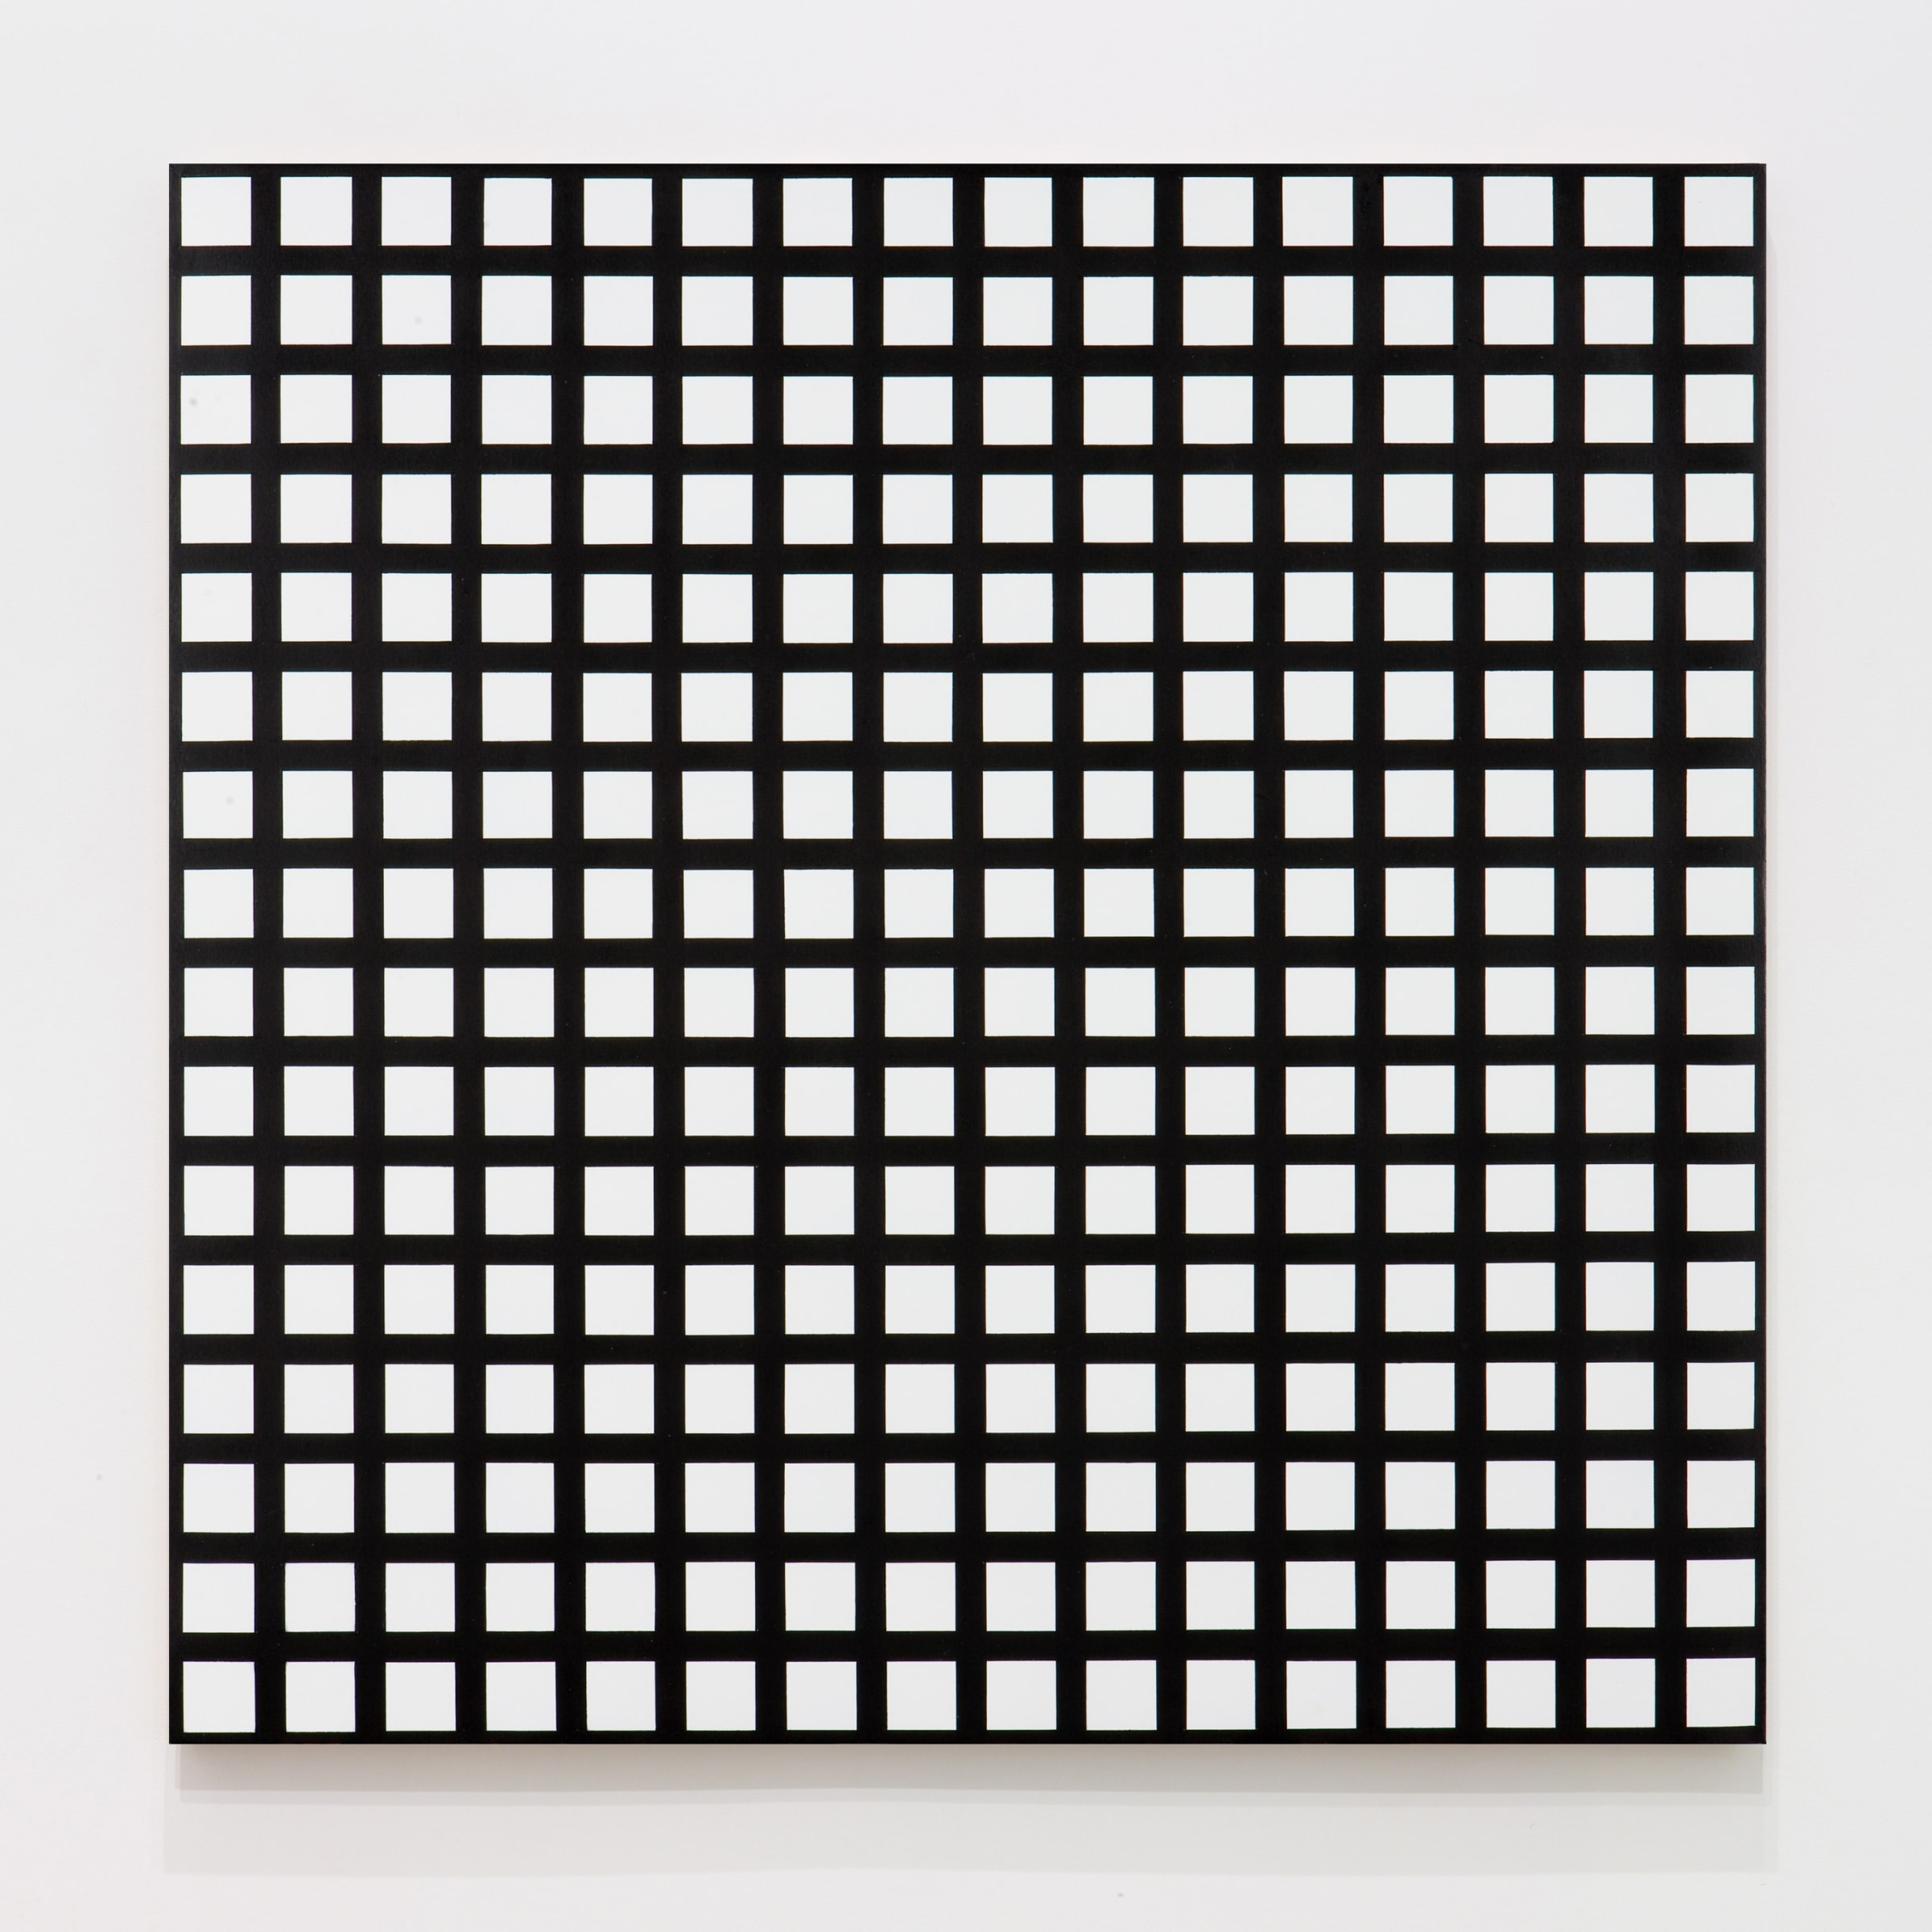 """<span class=""""link fancybox-details-link""""><a href=""""/artists/121-francois-morellet/works/10323-francois-morellet-trames-de-256-carres-reguliers-1972/"""">View Detail Page</a></span><div class=""""artist""""><span class=""""artist""""><strong>FRANCOIS MORELLET</strong></span></div><div class=""""title""""><em>Trames de 256 carrés réguliers</em>, 1972</div><div class=""""signed_and_dated"""">Signed, titled and dated with archive number on the reverse</div><div class=""""medium"""">Silkscreen on acrylic on board </div><div class=""""dimensions"""">80 x 80 cm<br /> 31 1/2 x 31 1/2 inches</div>"""